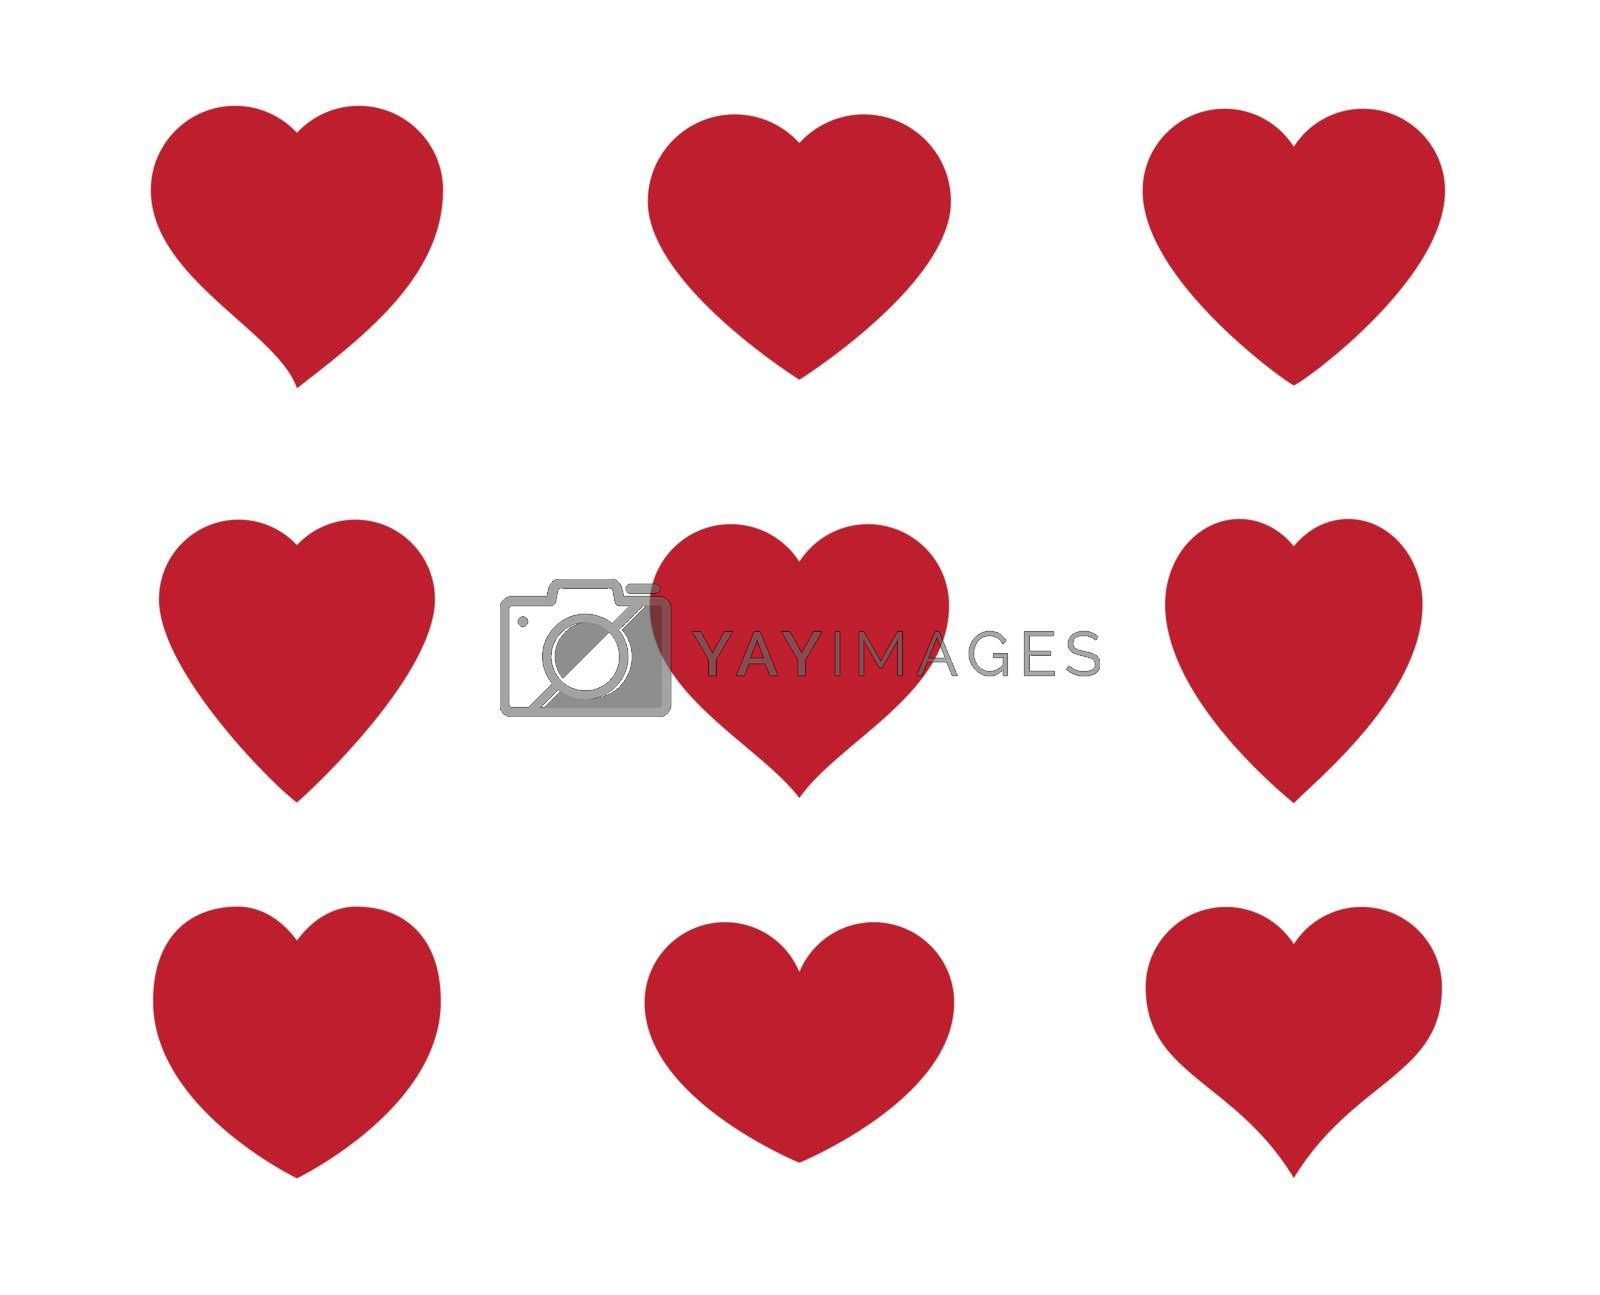 Red heart Icon isolated on white background. Set of love symbol for web site logo, mobile app UI design. Vector illustration flat style